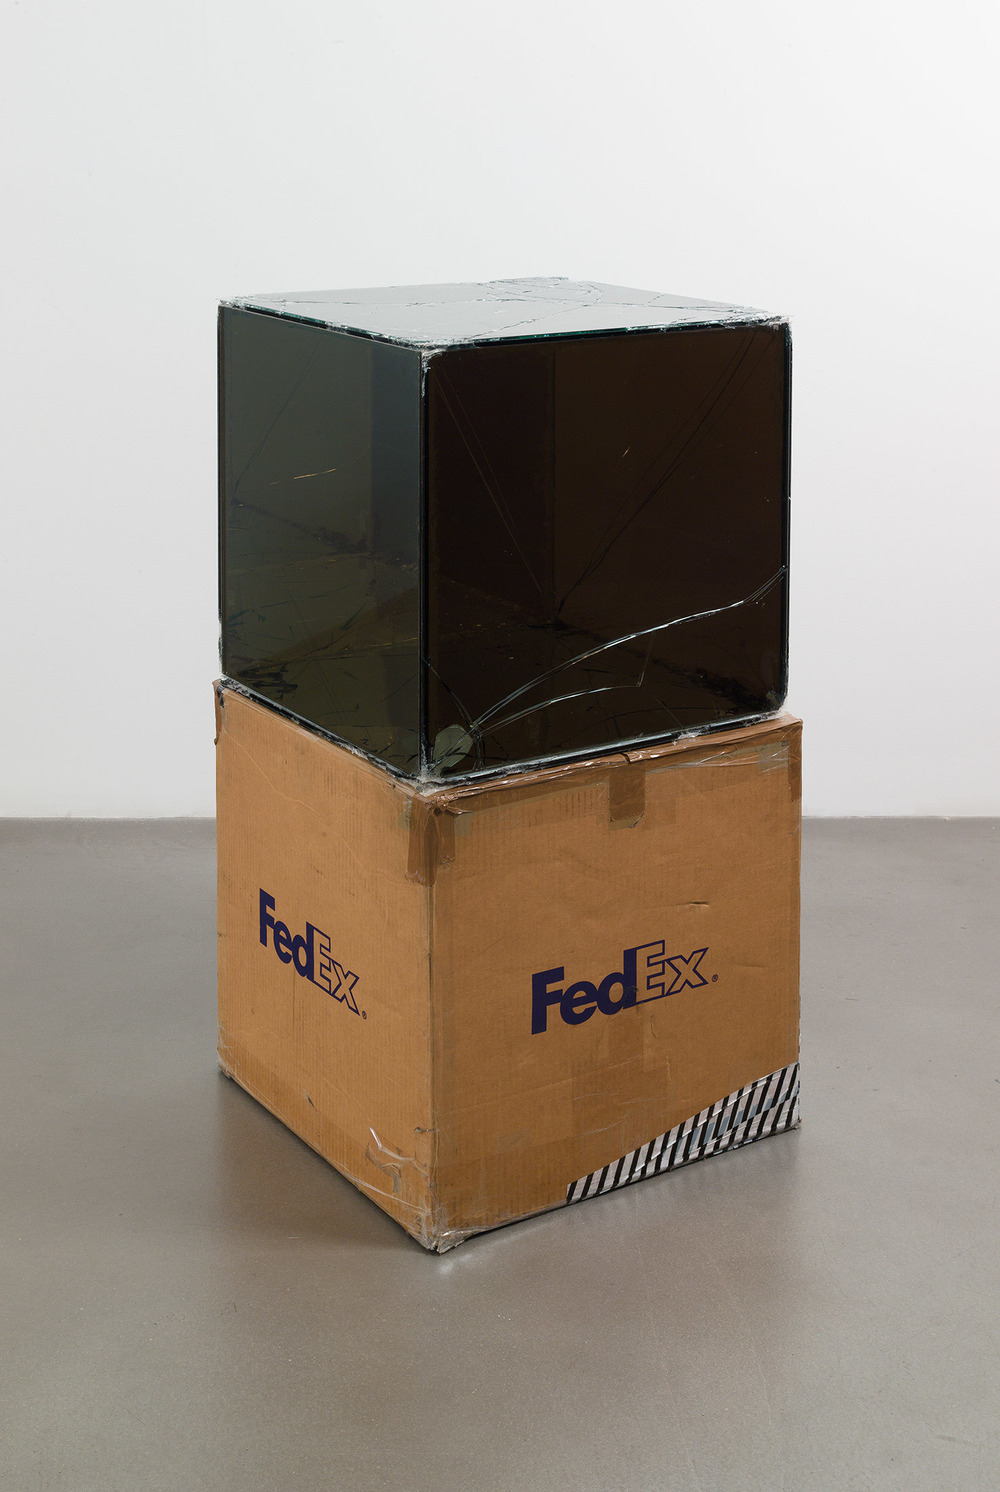 FedEx® Large Kraft Box  © 2005 FEDEX 330508 REV 10/05 SSCC, Standard Overnight, Los Angeles–Oak Park trk#865344981196, September 17–18, 2008, Standard Overnight, Oak Park–Los Angeles trk#865326699753, March 12–13, 2009, Standard Overnight, Los Angeles–New York trk#774901624186, November 4–5, 2015, Standard Overnight, New York–Los Angeles trk#775241295627, December 21–22, 2015    2008–   Laminated Mirropane, FedEx shipping box, accrued FedEx shipping and tracking labels, silicone, metal, tape  20 x 20 x 20 inches   FedEx Glass Works, 2007–